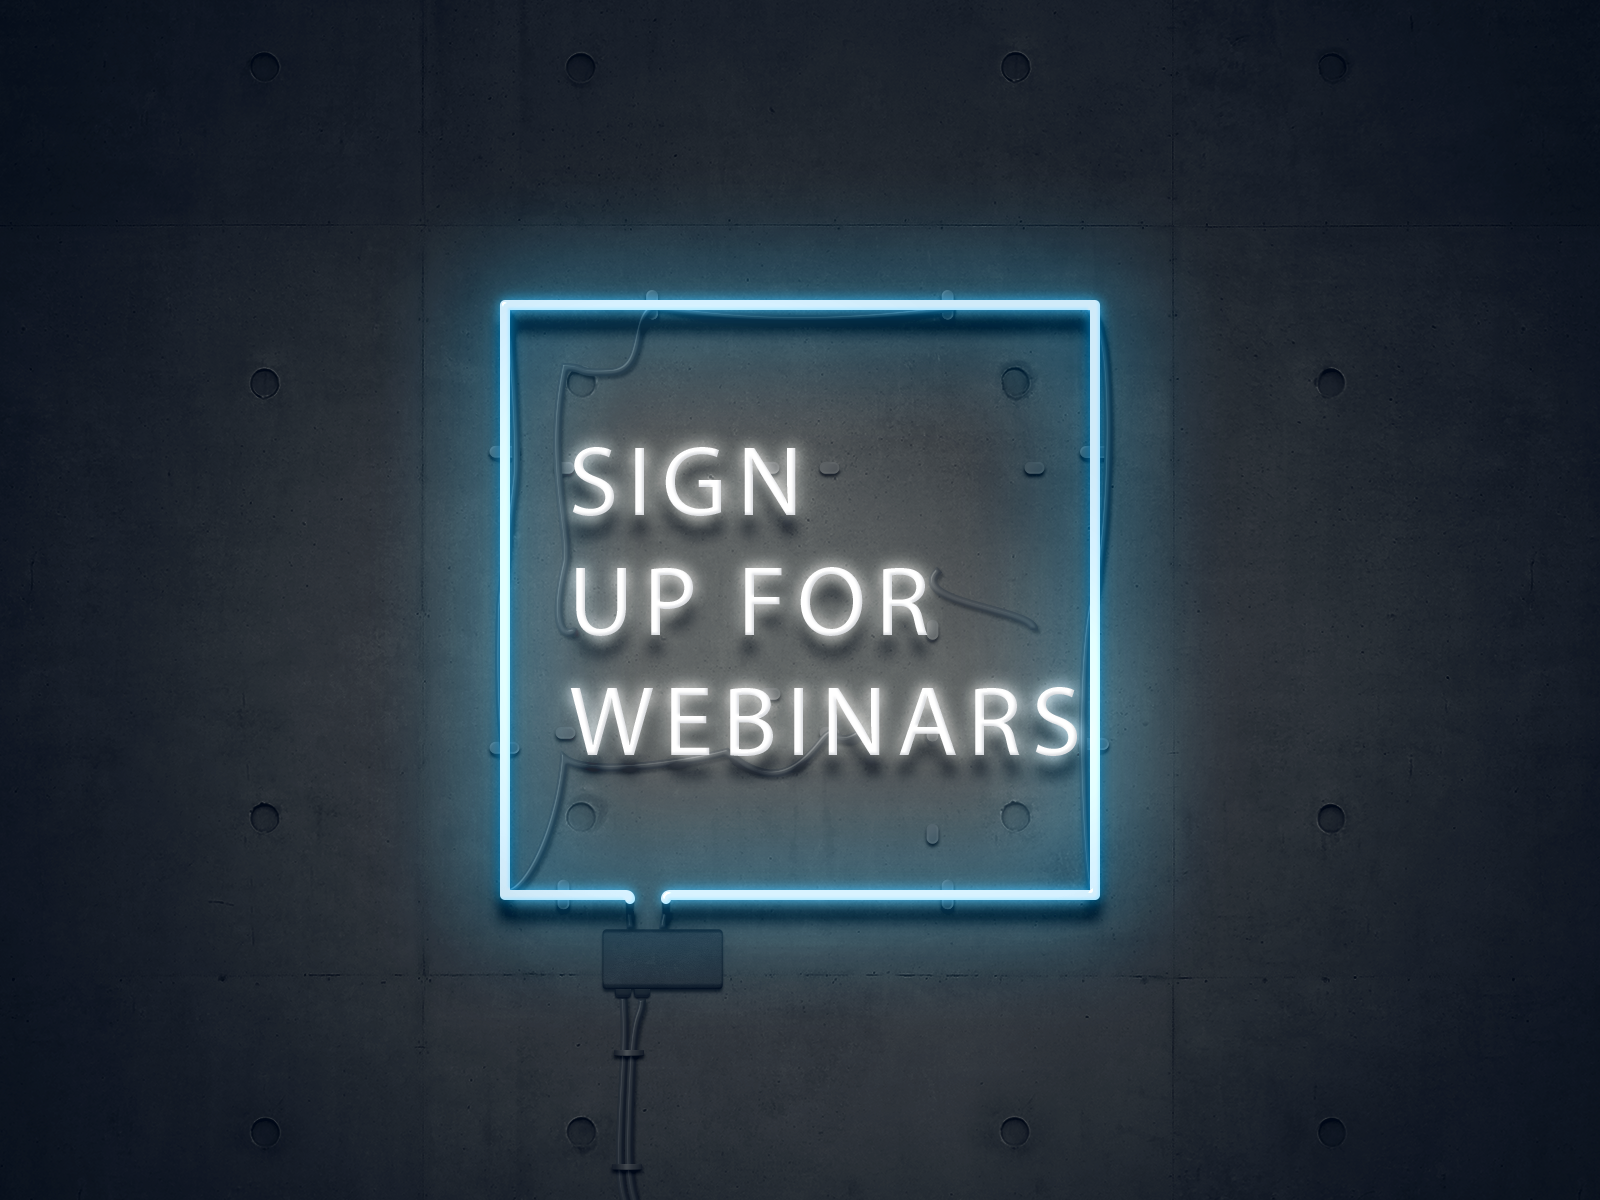 Sign up for webinars-1